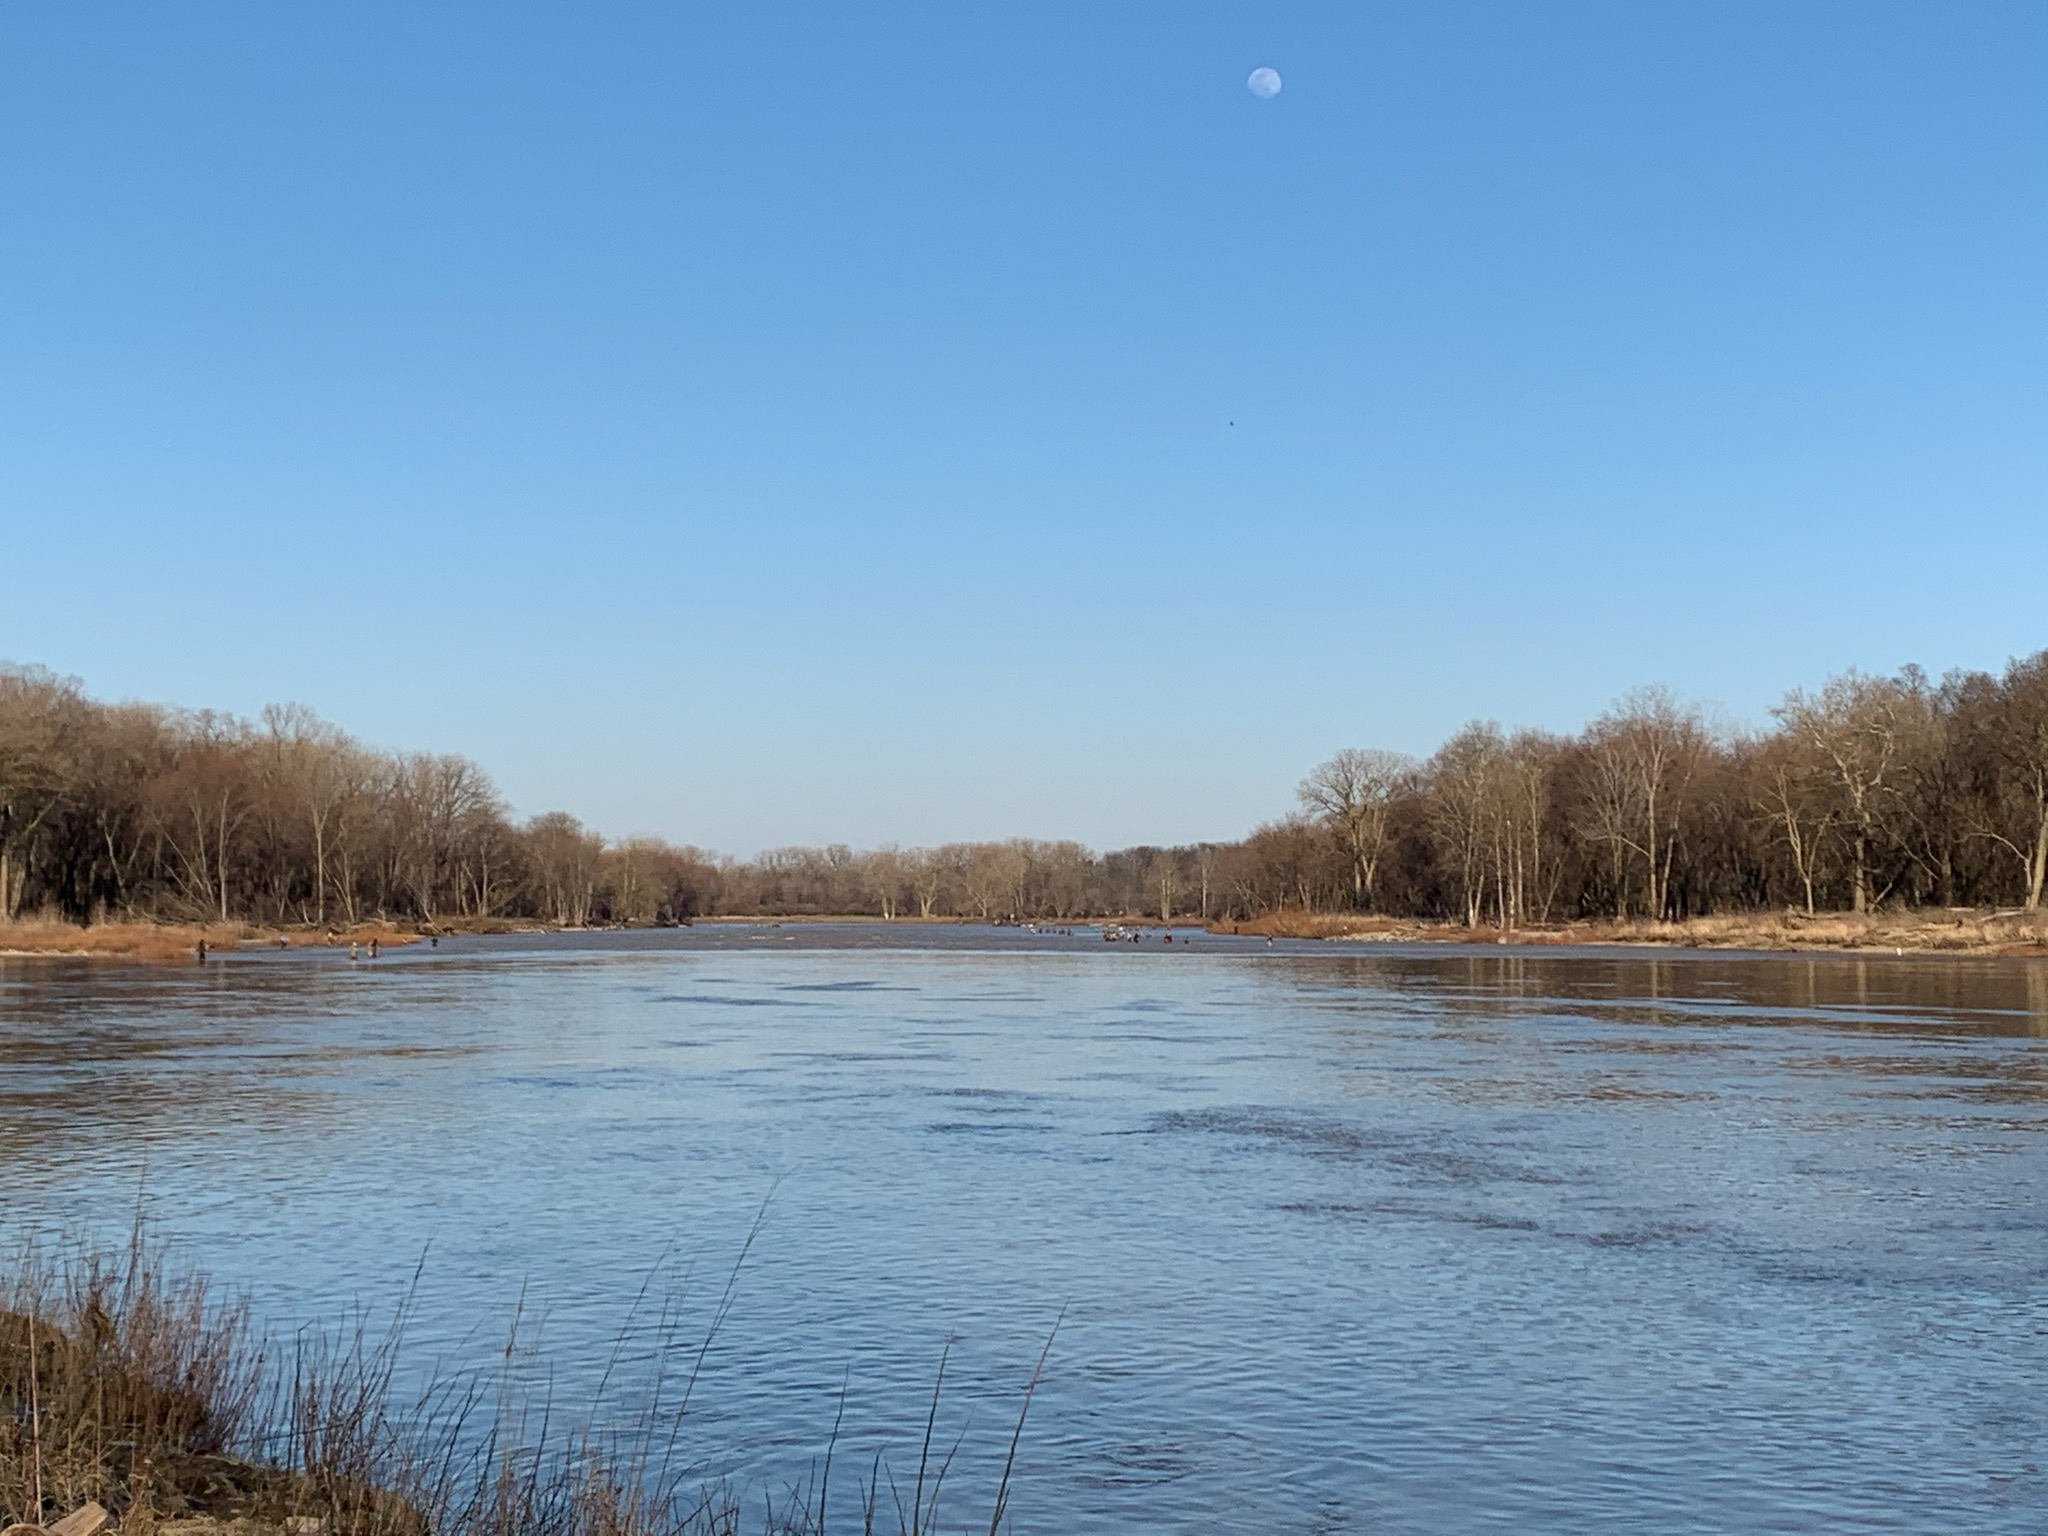 Maumee river fishing..6 April 20